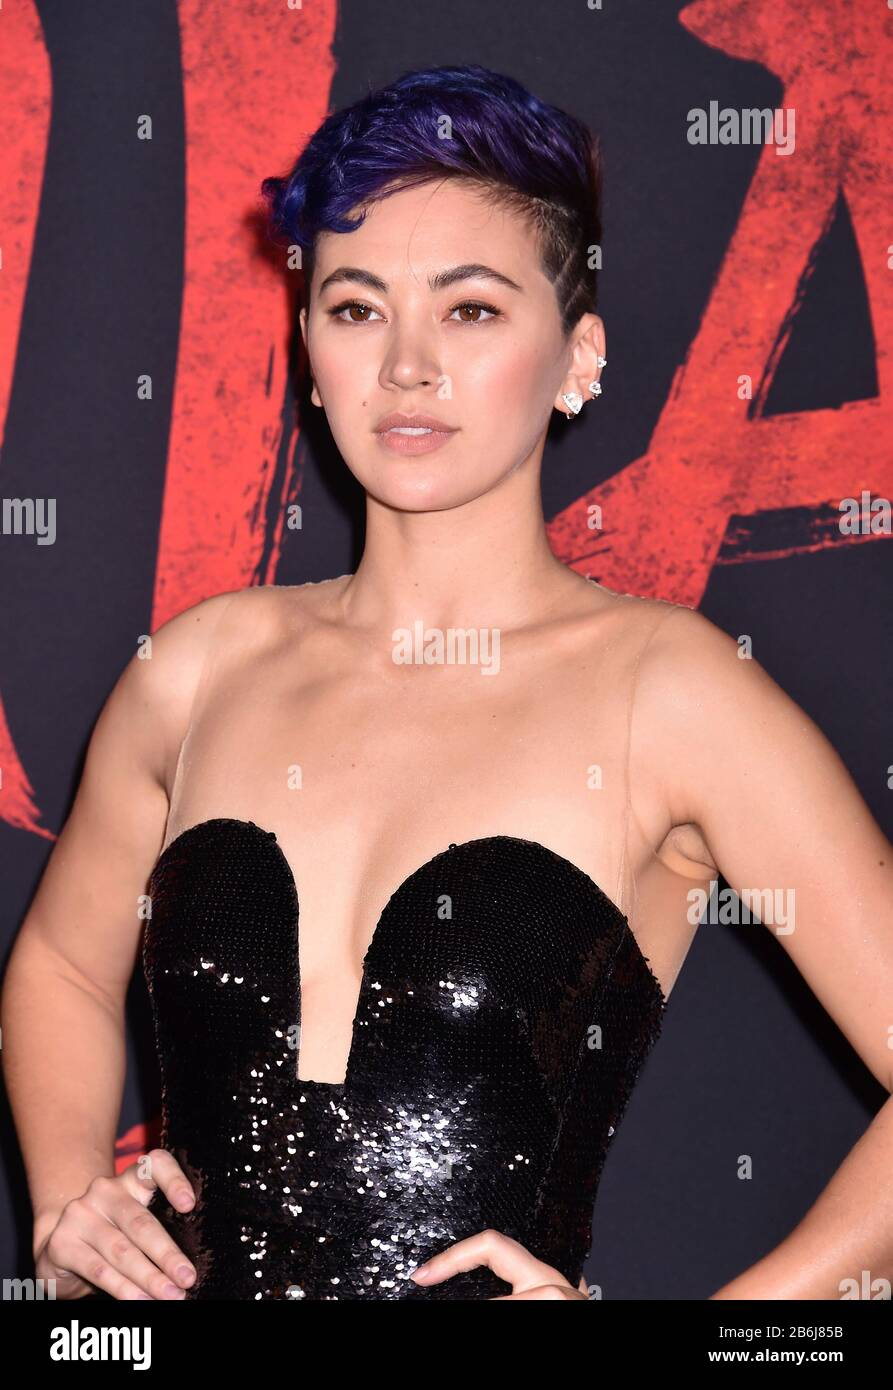 Hollywood Ca March 09 Jessica Henwick Attends The Premiere Of Disney S Mulan At The El Capitan Theatre On March 09 2020 In Hollywood California Stock Photo Alamy